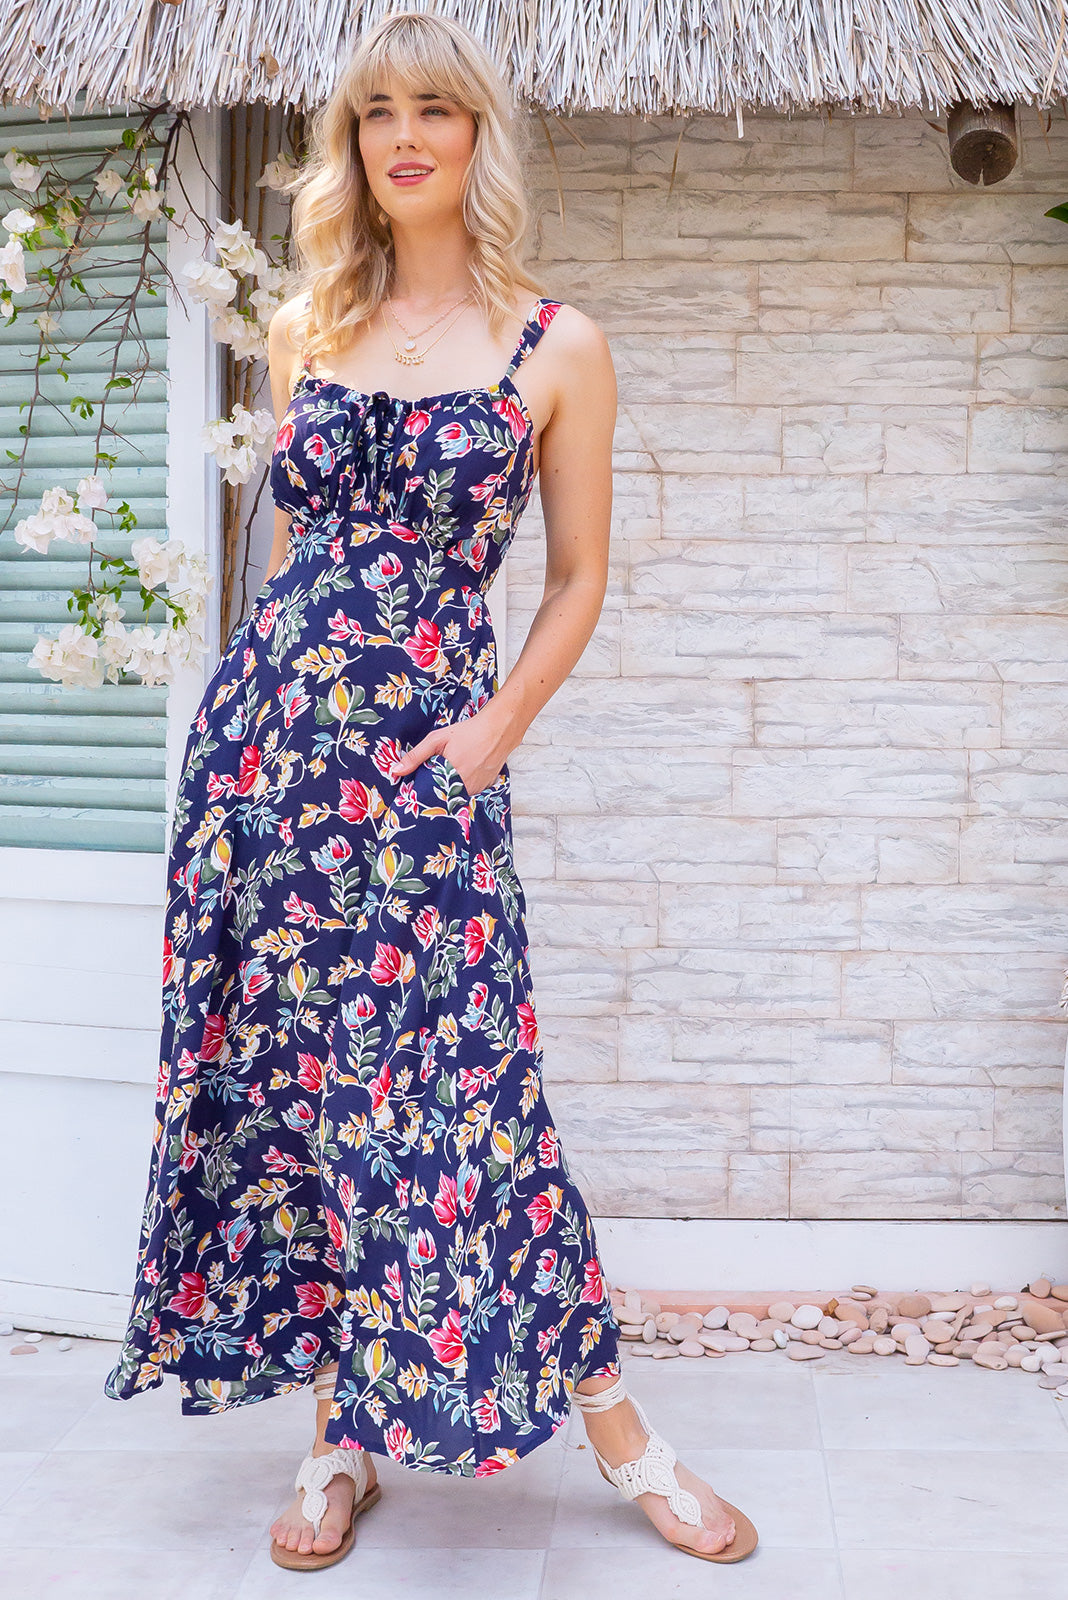 Ballito Bay Navy Gardens Maxi Dress, bohemian summer style, 100% rayon, elasticated shirred back, sleeveless, keyhole drawstring design on bust, side pockets, navy base with medium red, teal, gold and white floral print.